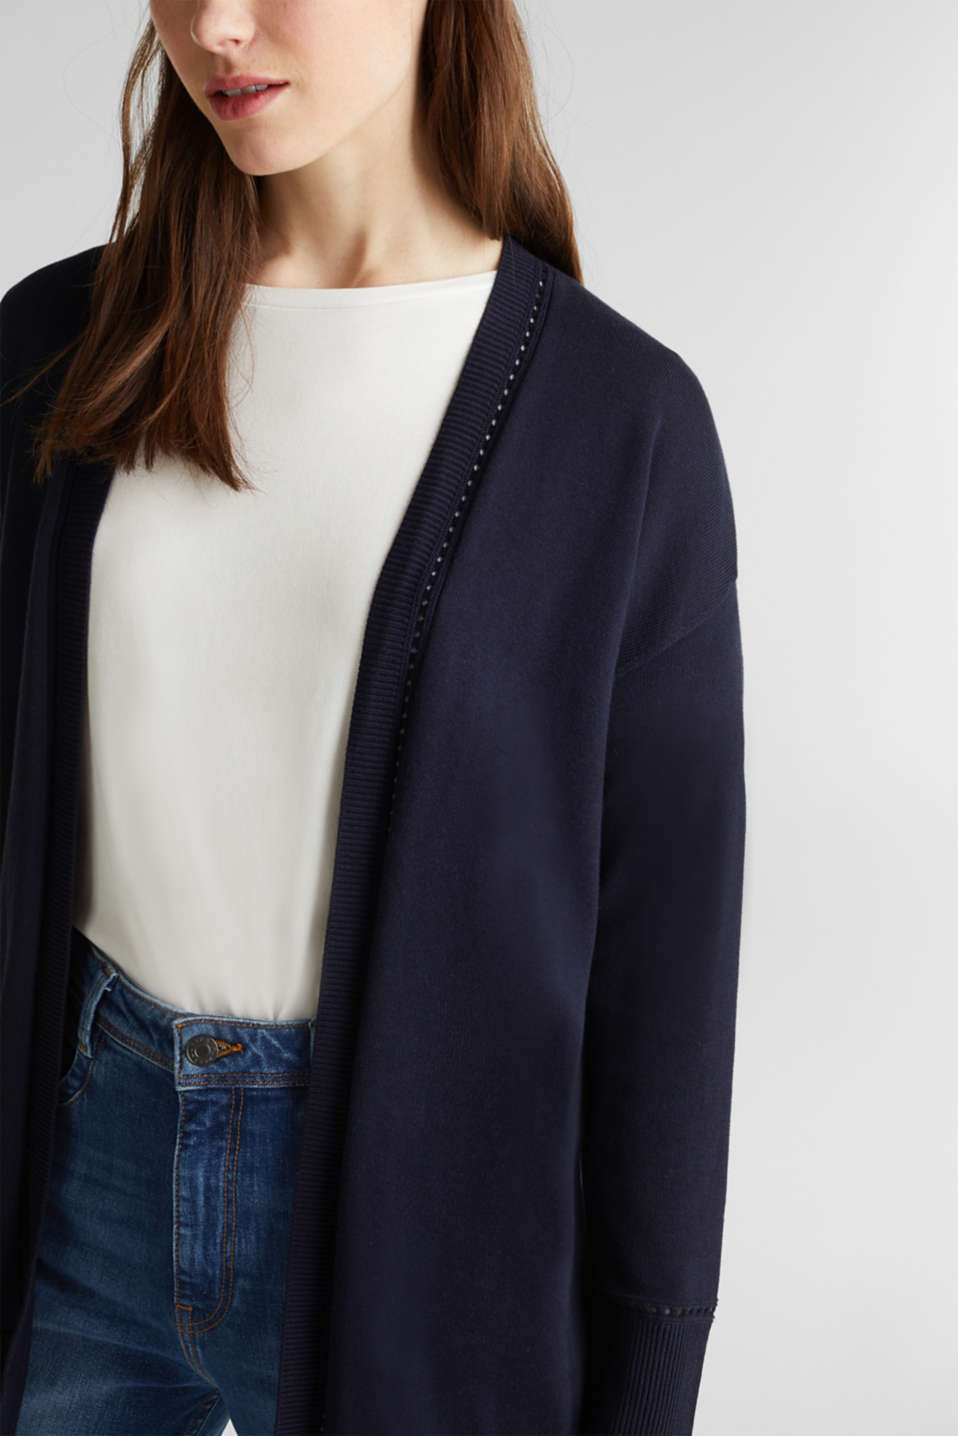 Cardigan with open-work pattern details, NAVY, detail image number 2